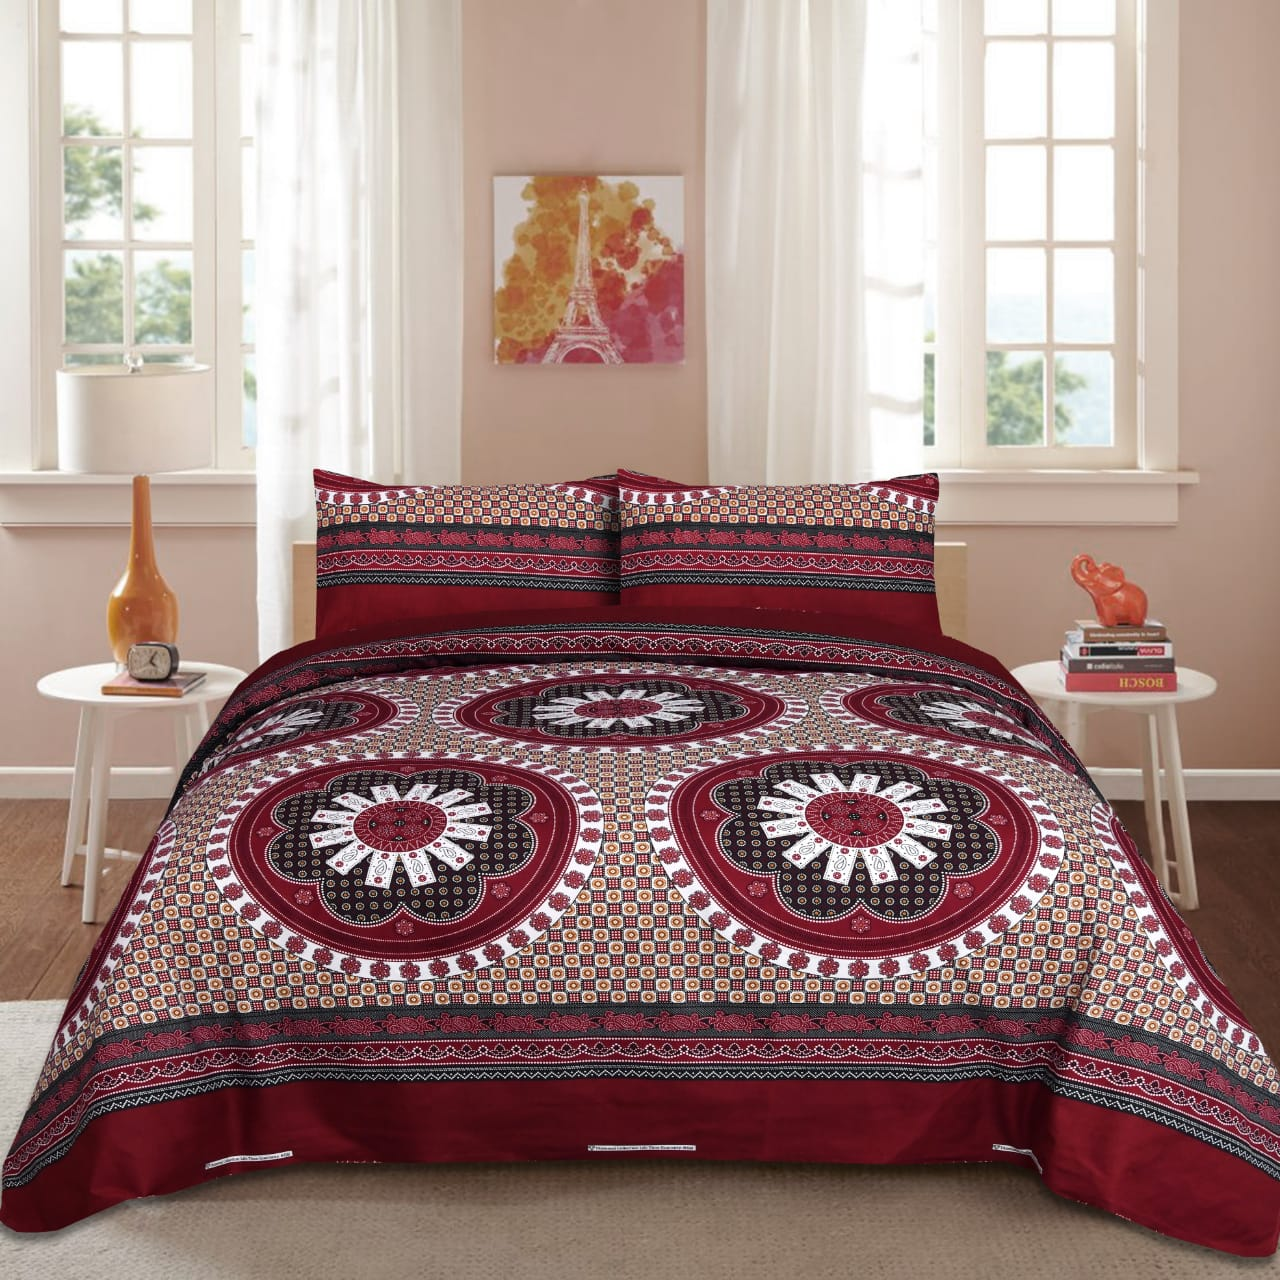 Folklore Circle Cotton Bed Sheet